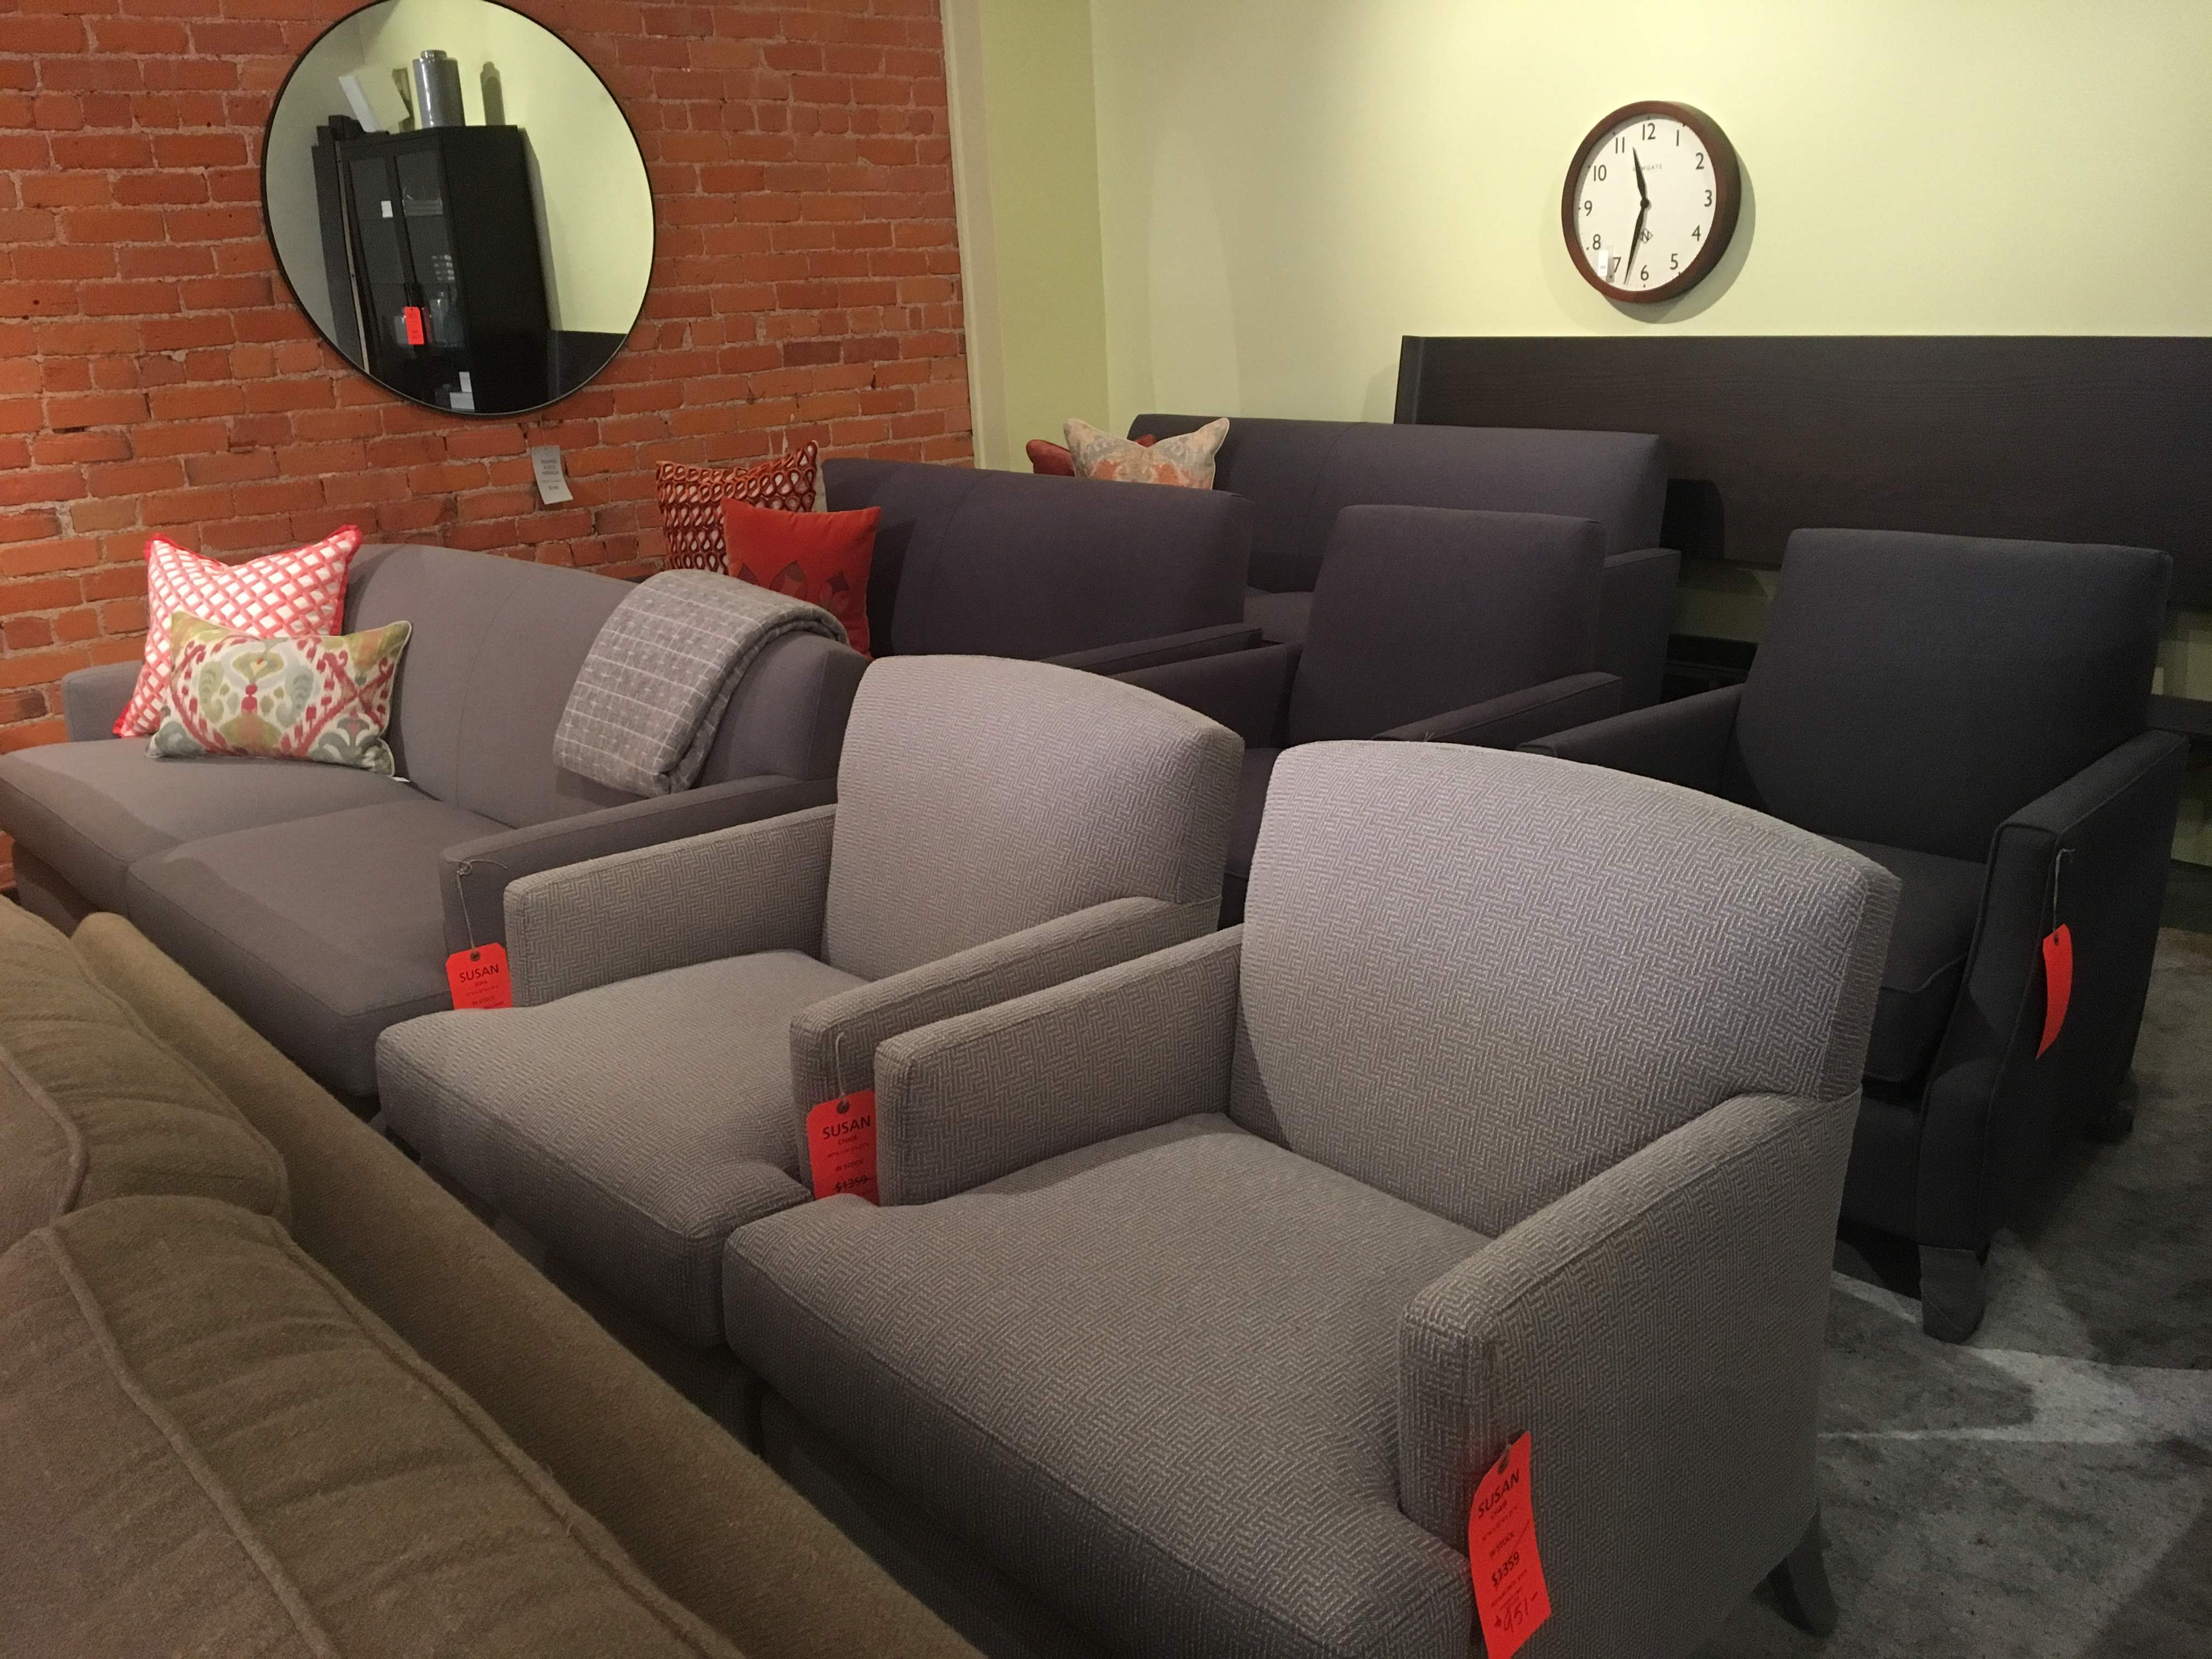 Brilliant Clearance Furniture Sale Ann Arbor Three Chairs Co Chairs Home Interior And Landscaping Ologienasavecom